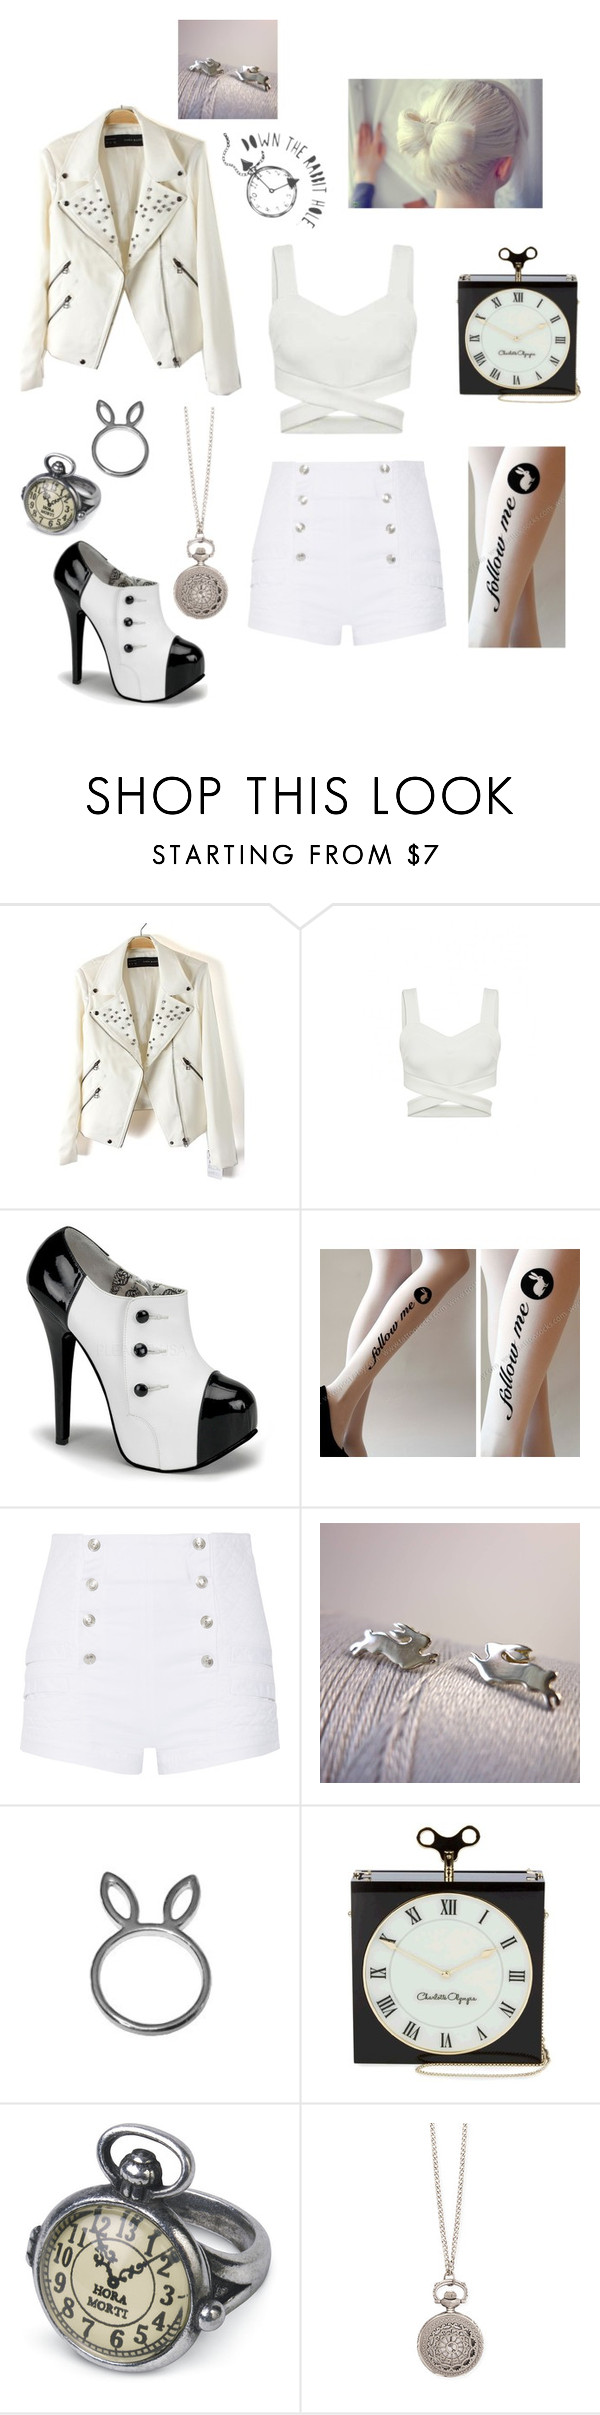 """The White Rabbit"" by hannahc1133 ❤ liked on Polyvore featuring Pierre Balmain, Charlotte Olympia and Zad"